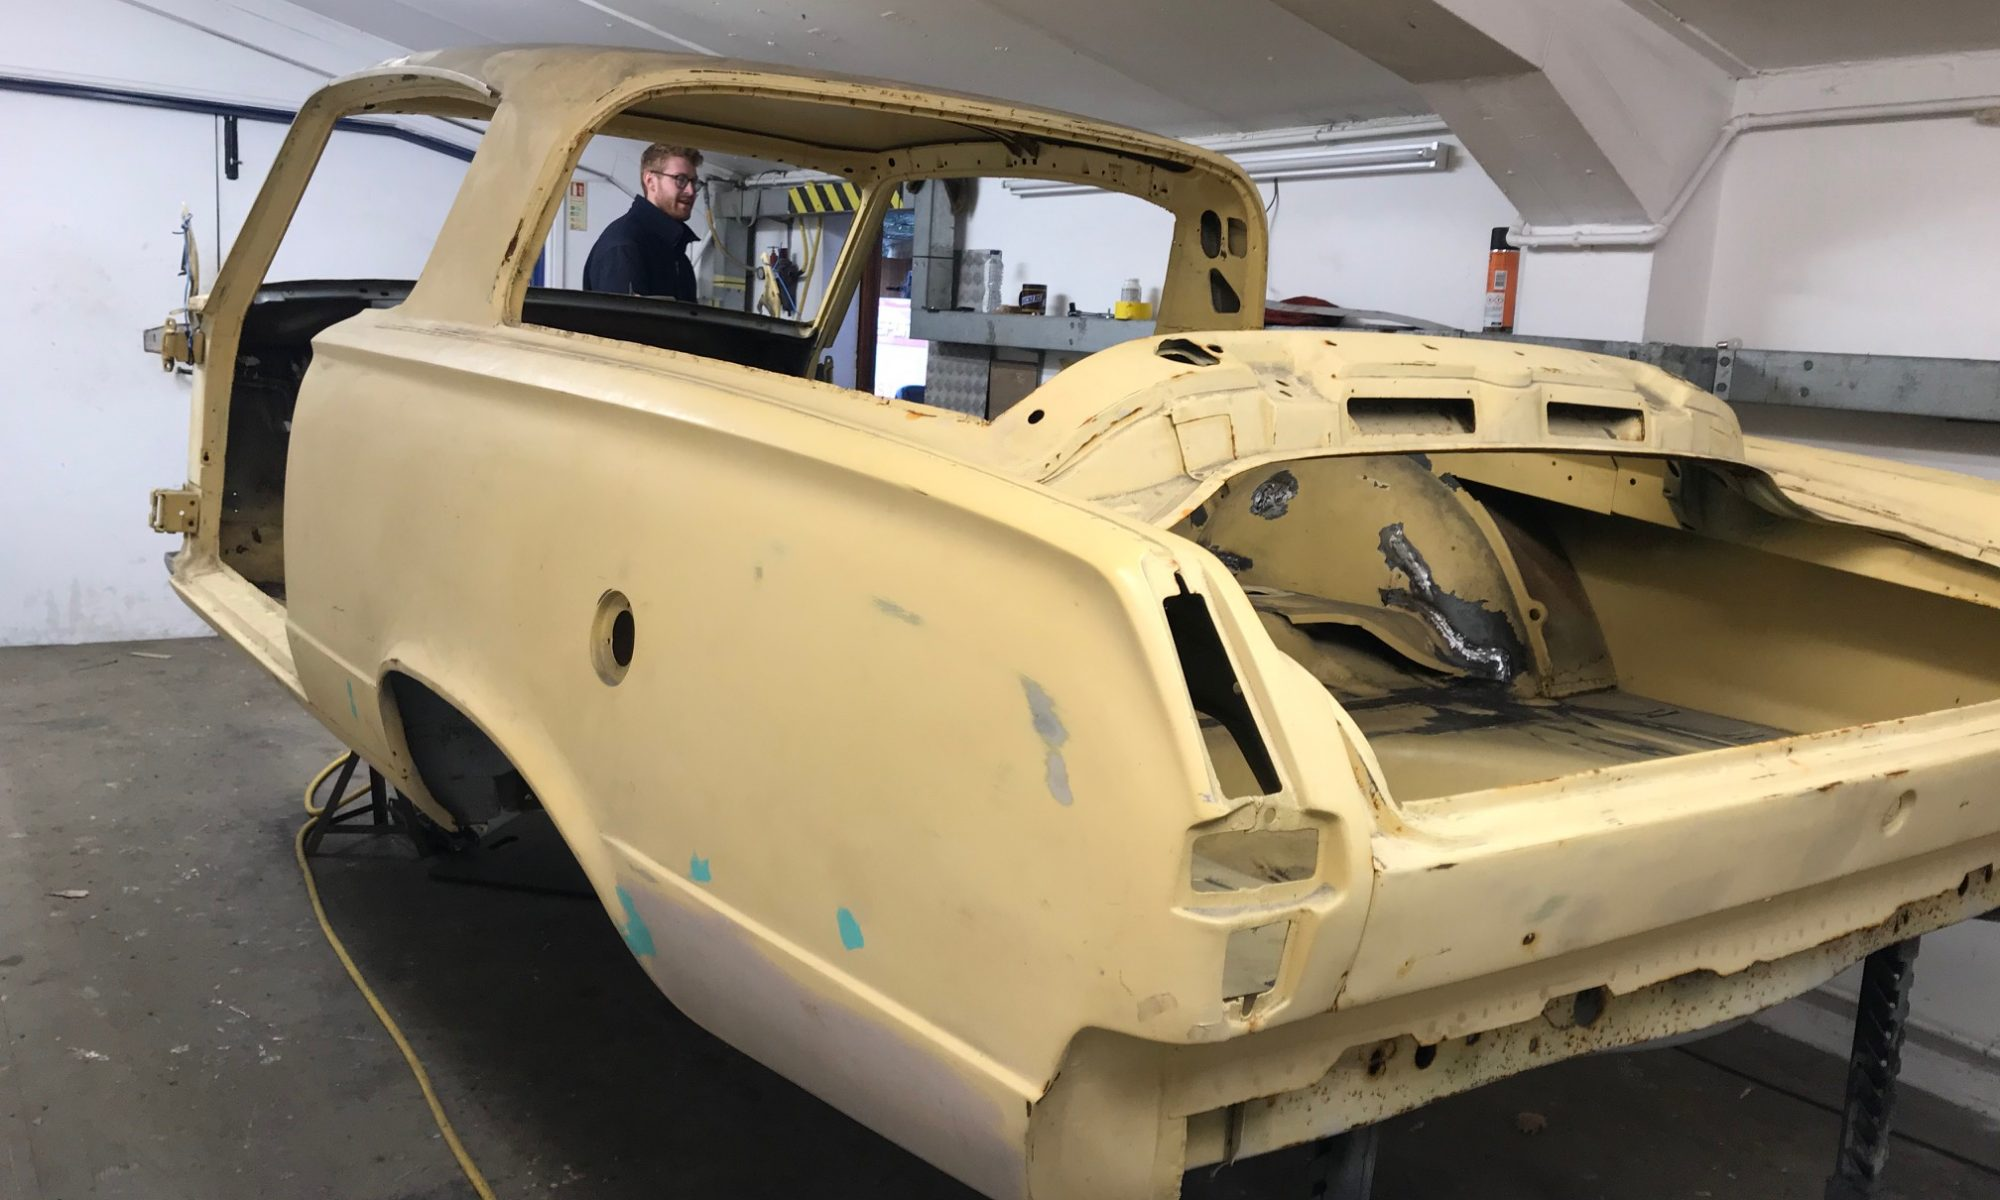 Plymouth Barracuda bodyshell race preparation